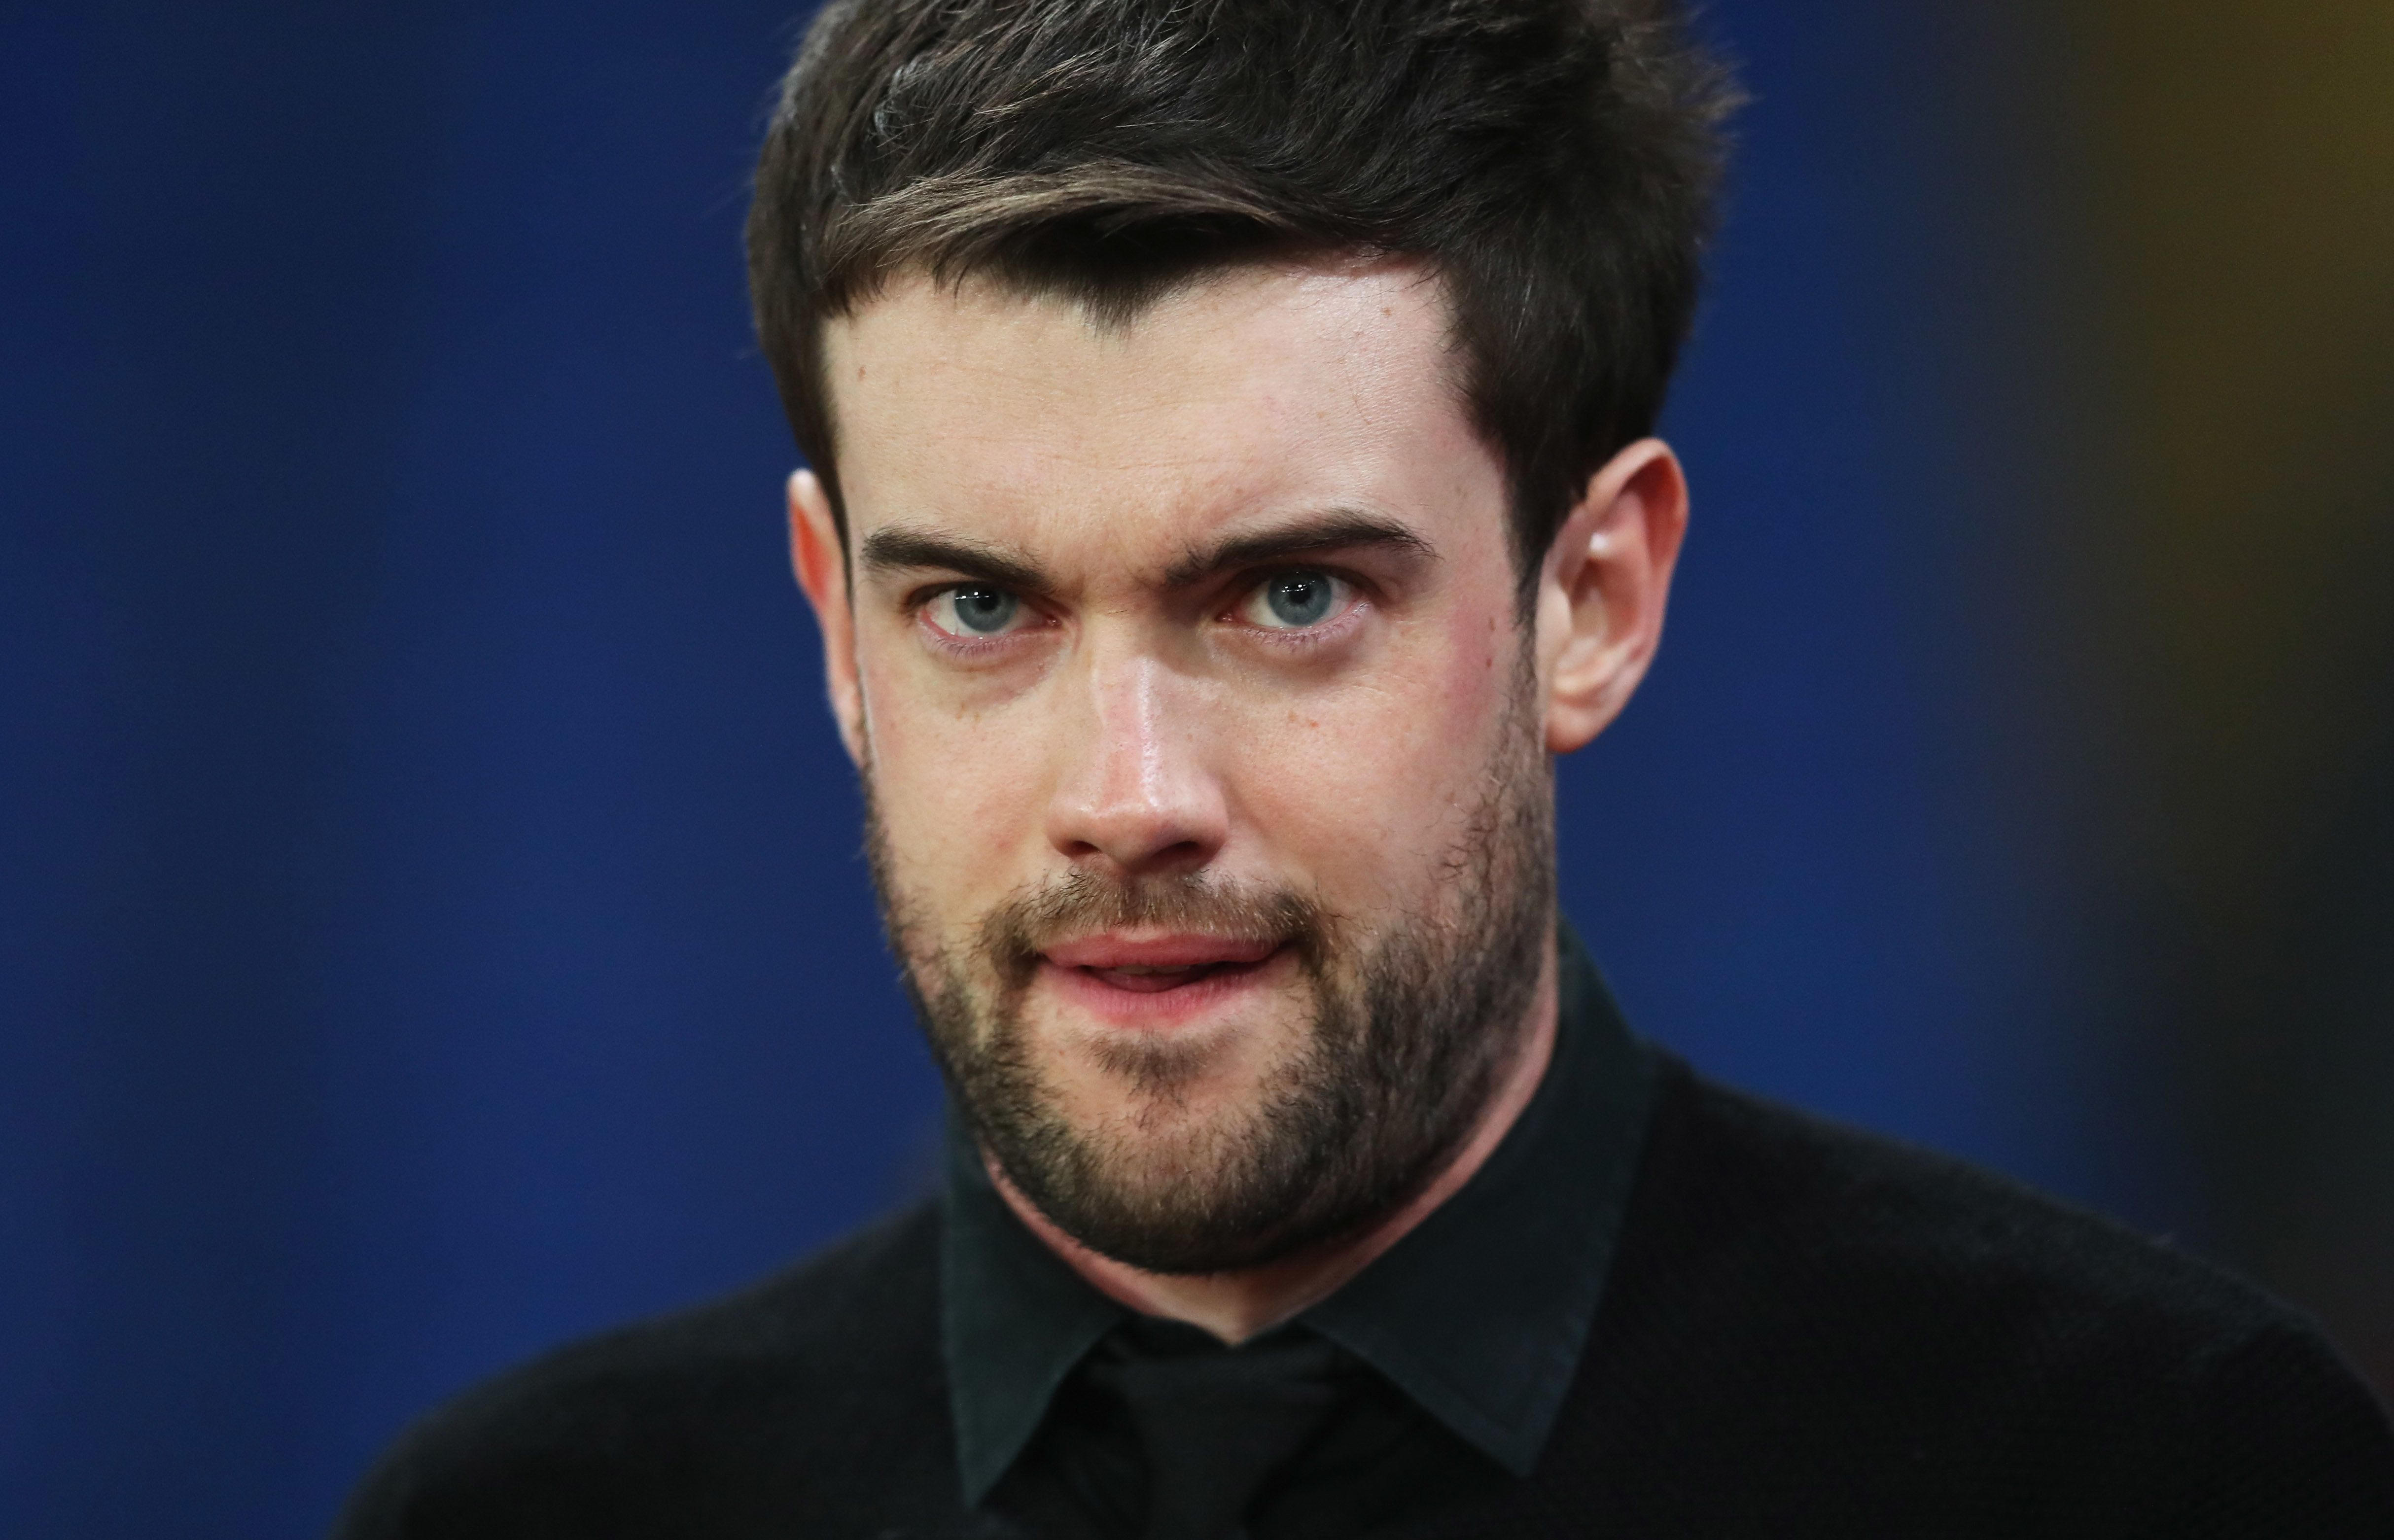 Jack Whitehall Reveals Regret Over Crude Joke About The Queen Which Upset His